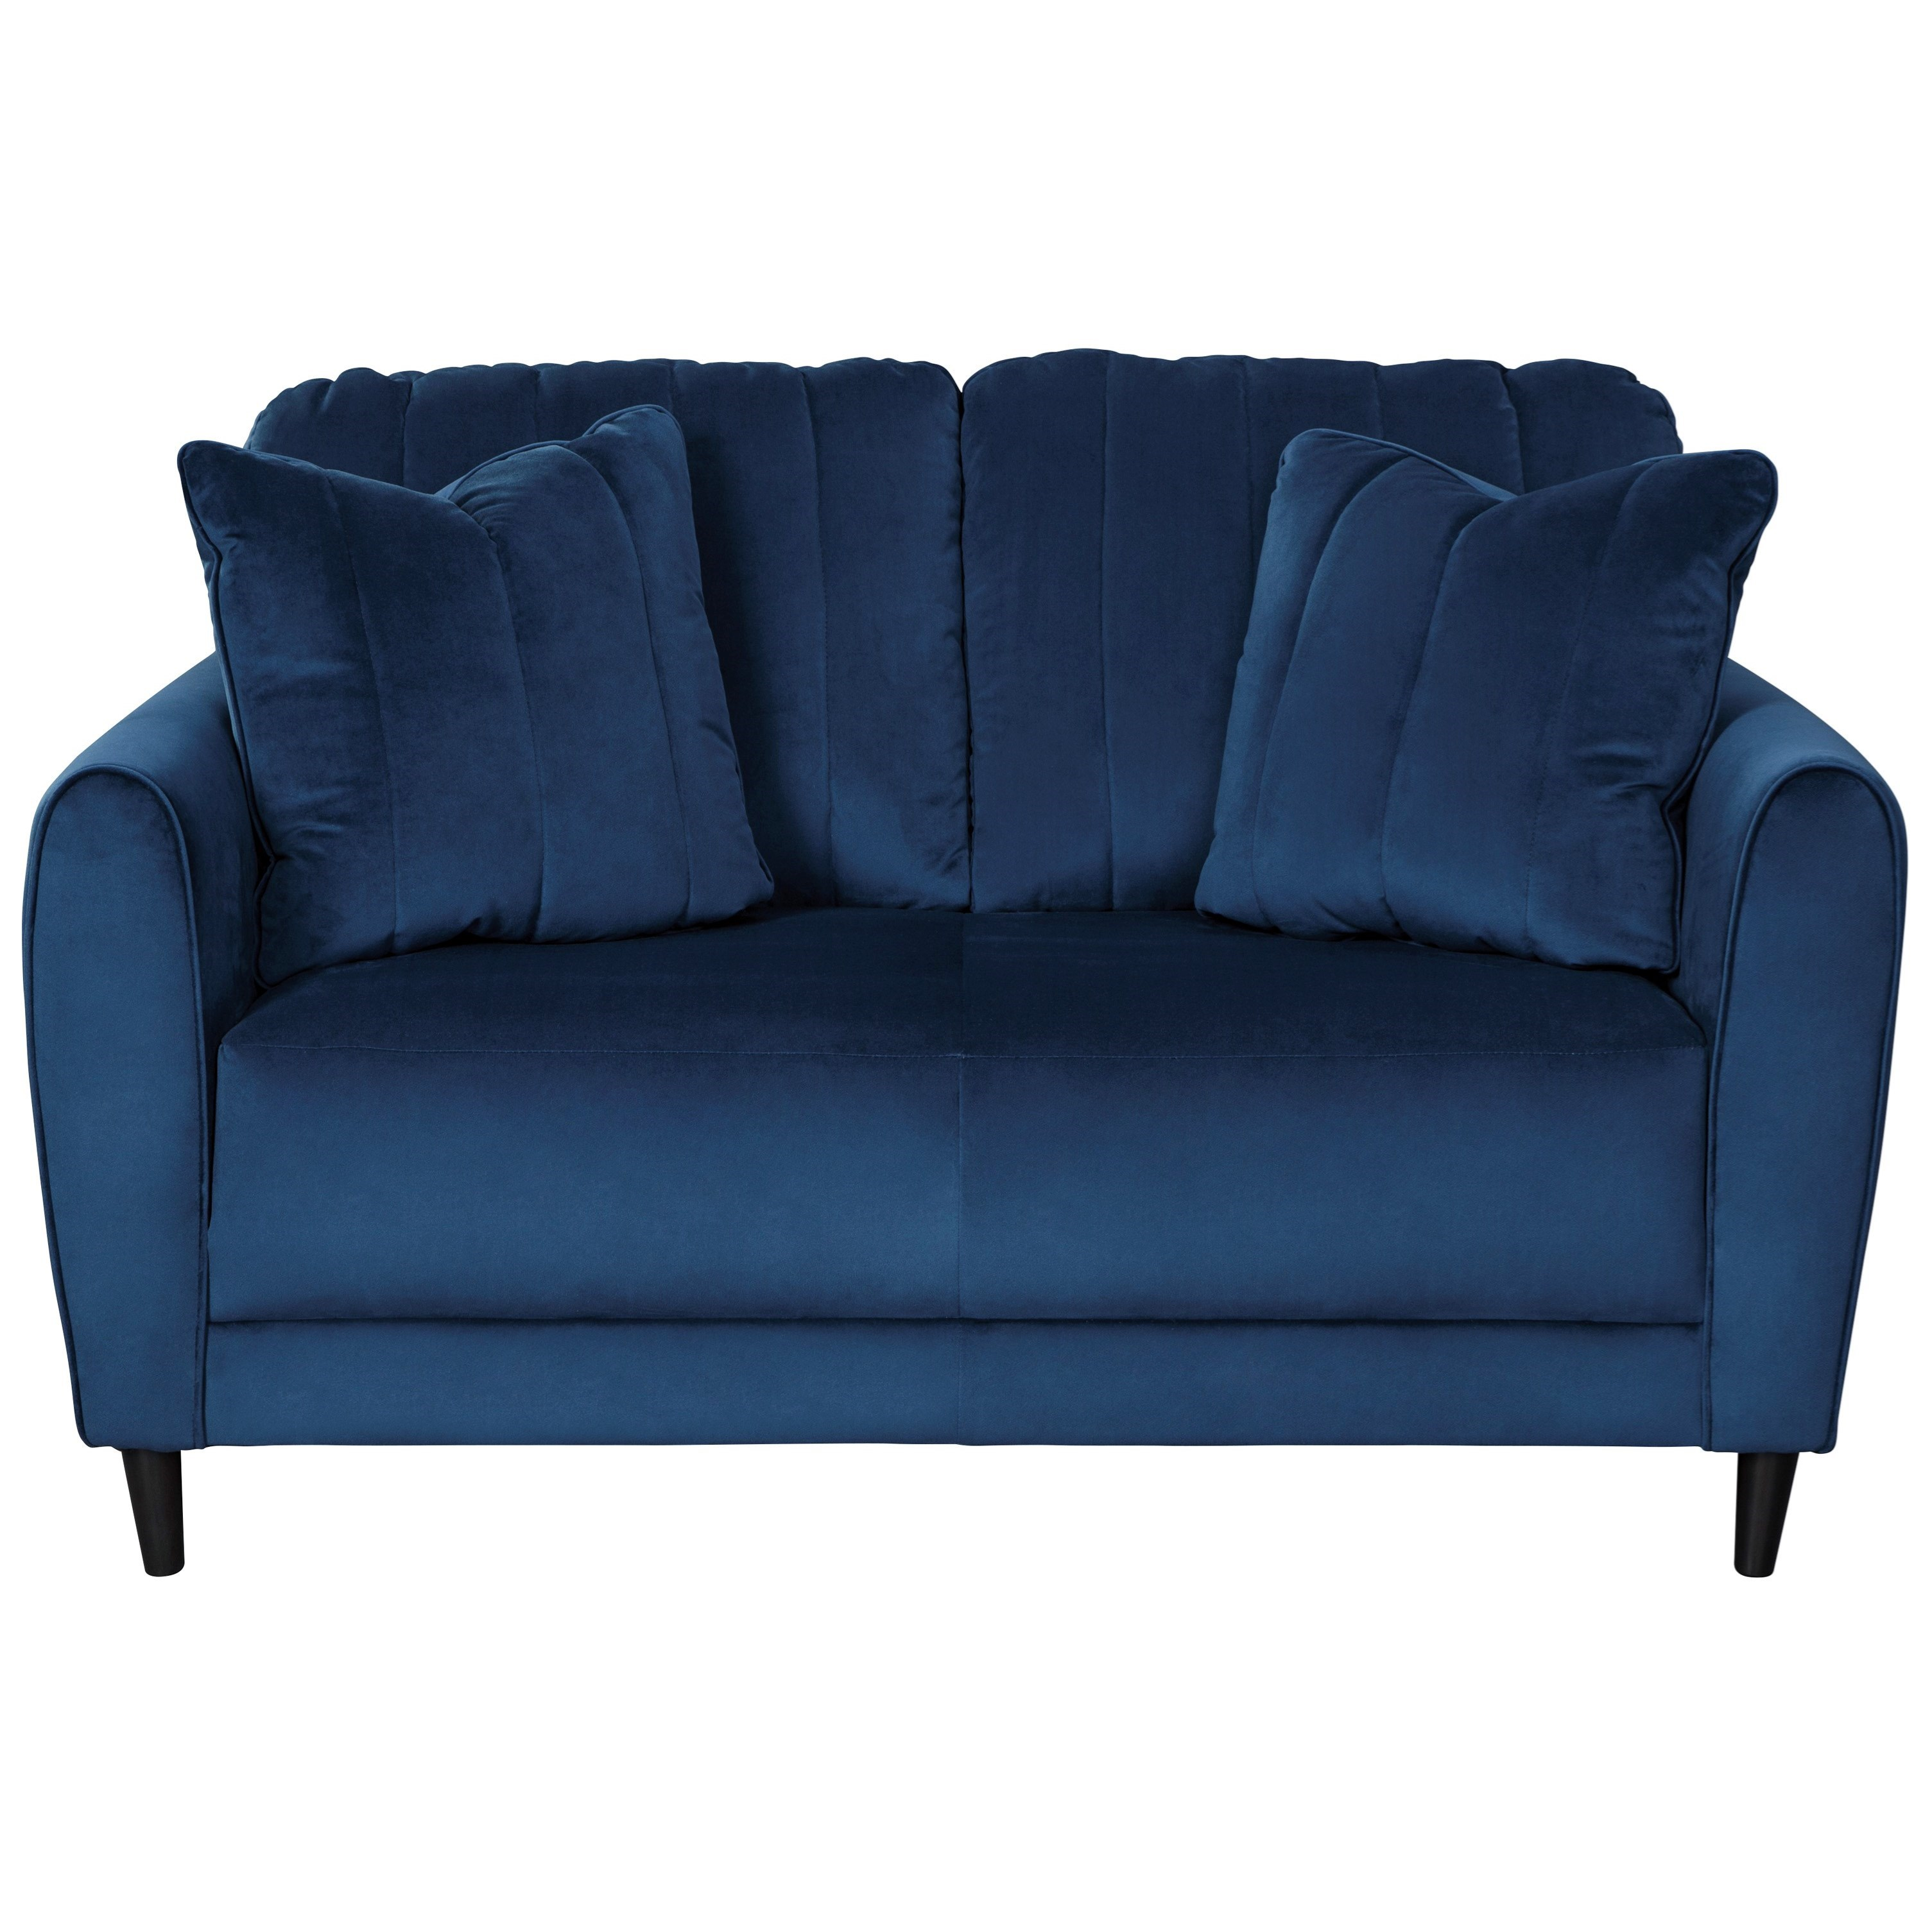 Enderlin Loveseat by Signature Design by Ashley at Northeast Factory Direct